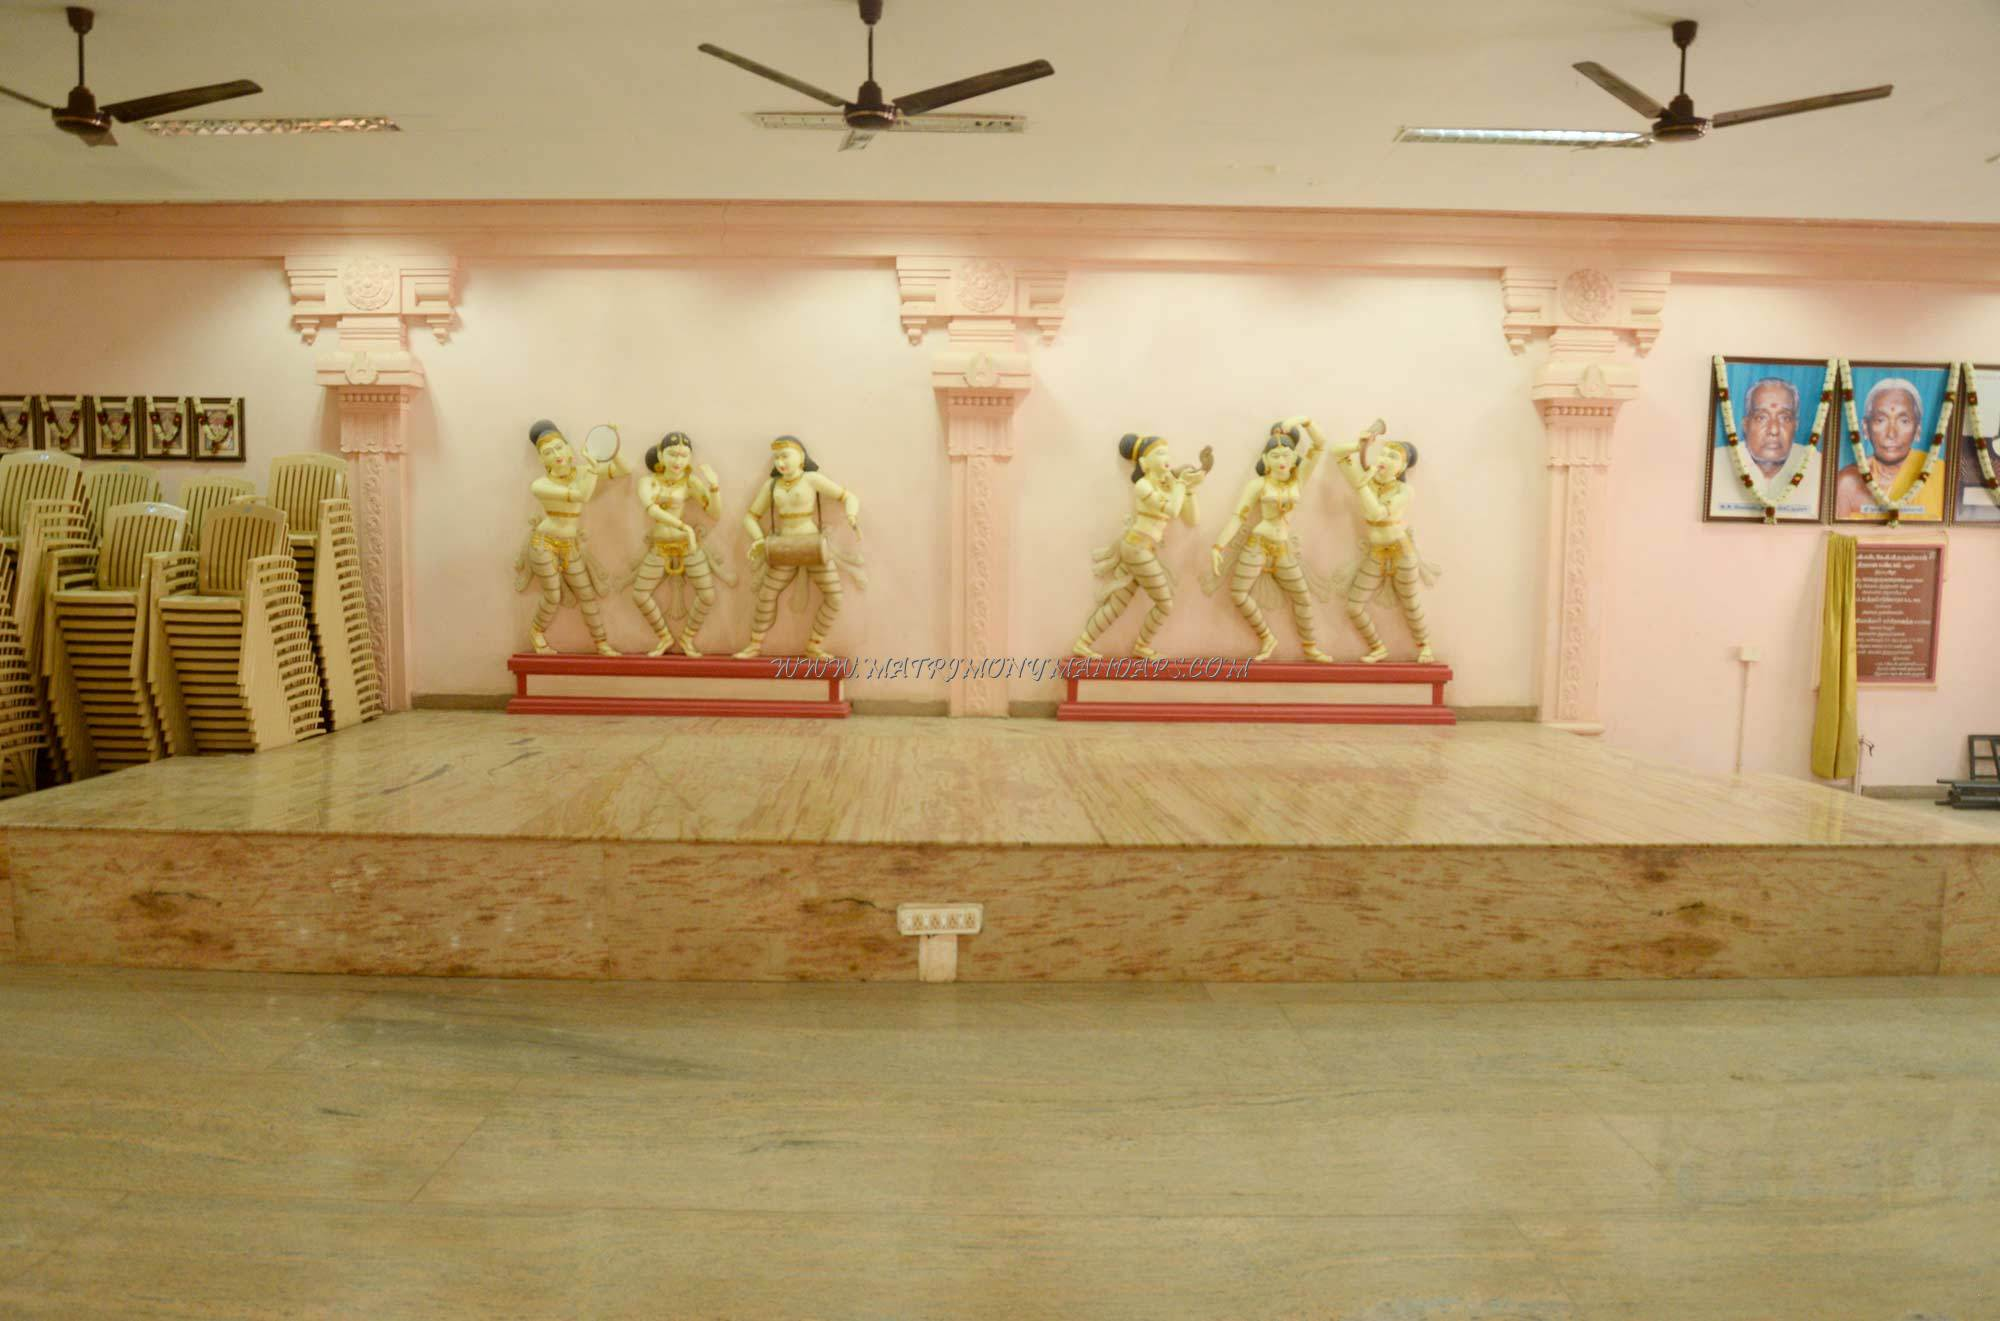 Find the availability of the RVS KPV Maruthammal Thirumana Mandapam in Sulur, Coimbatore and avail special offers